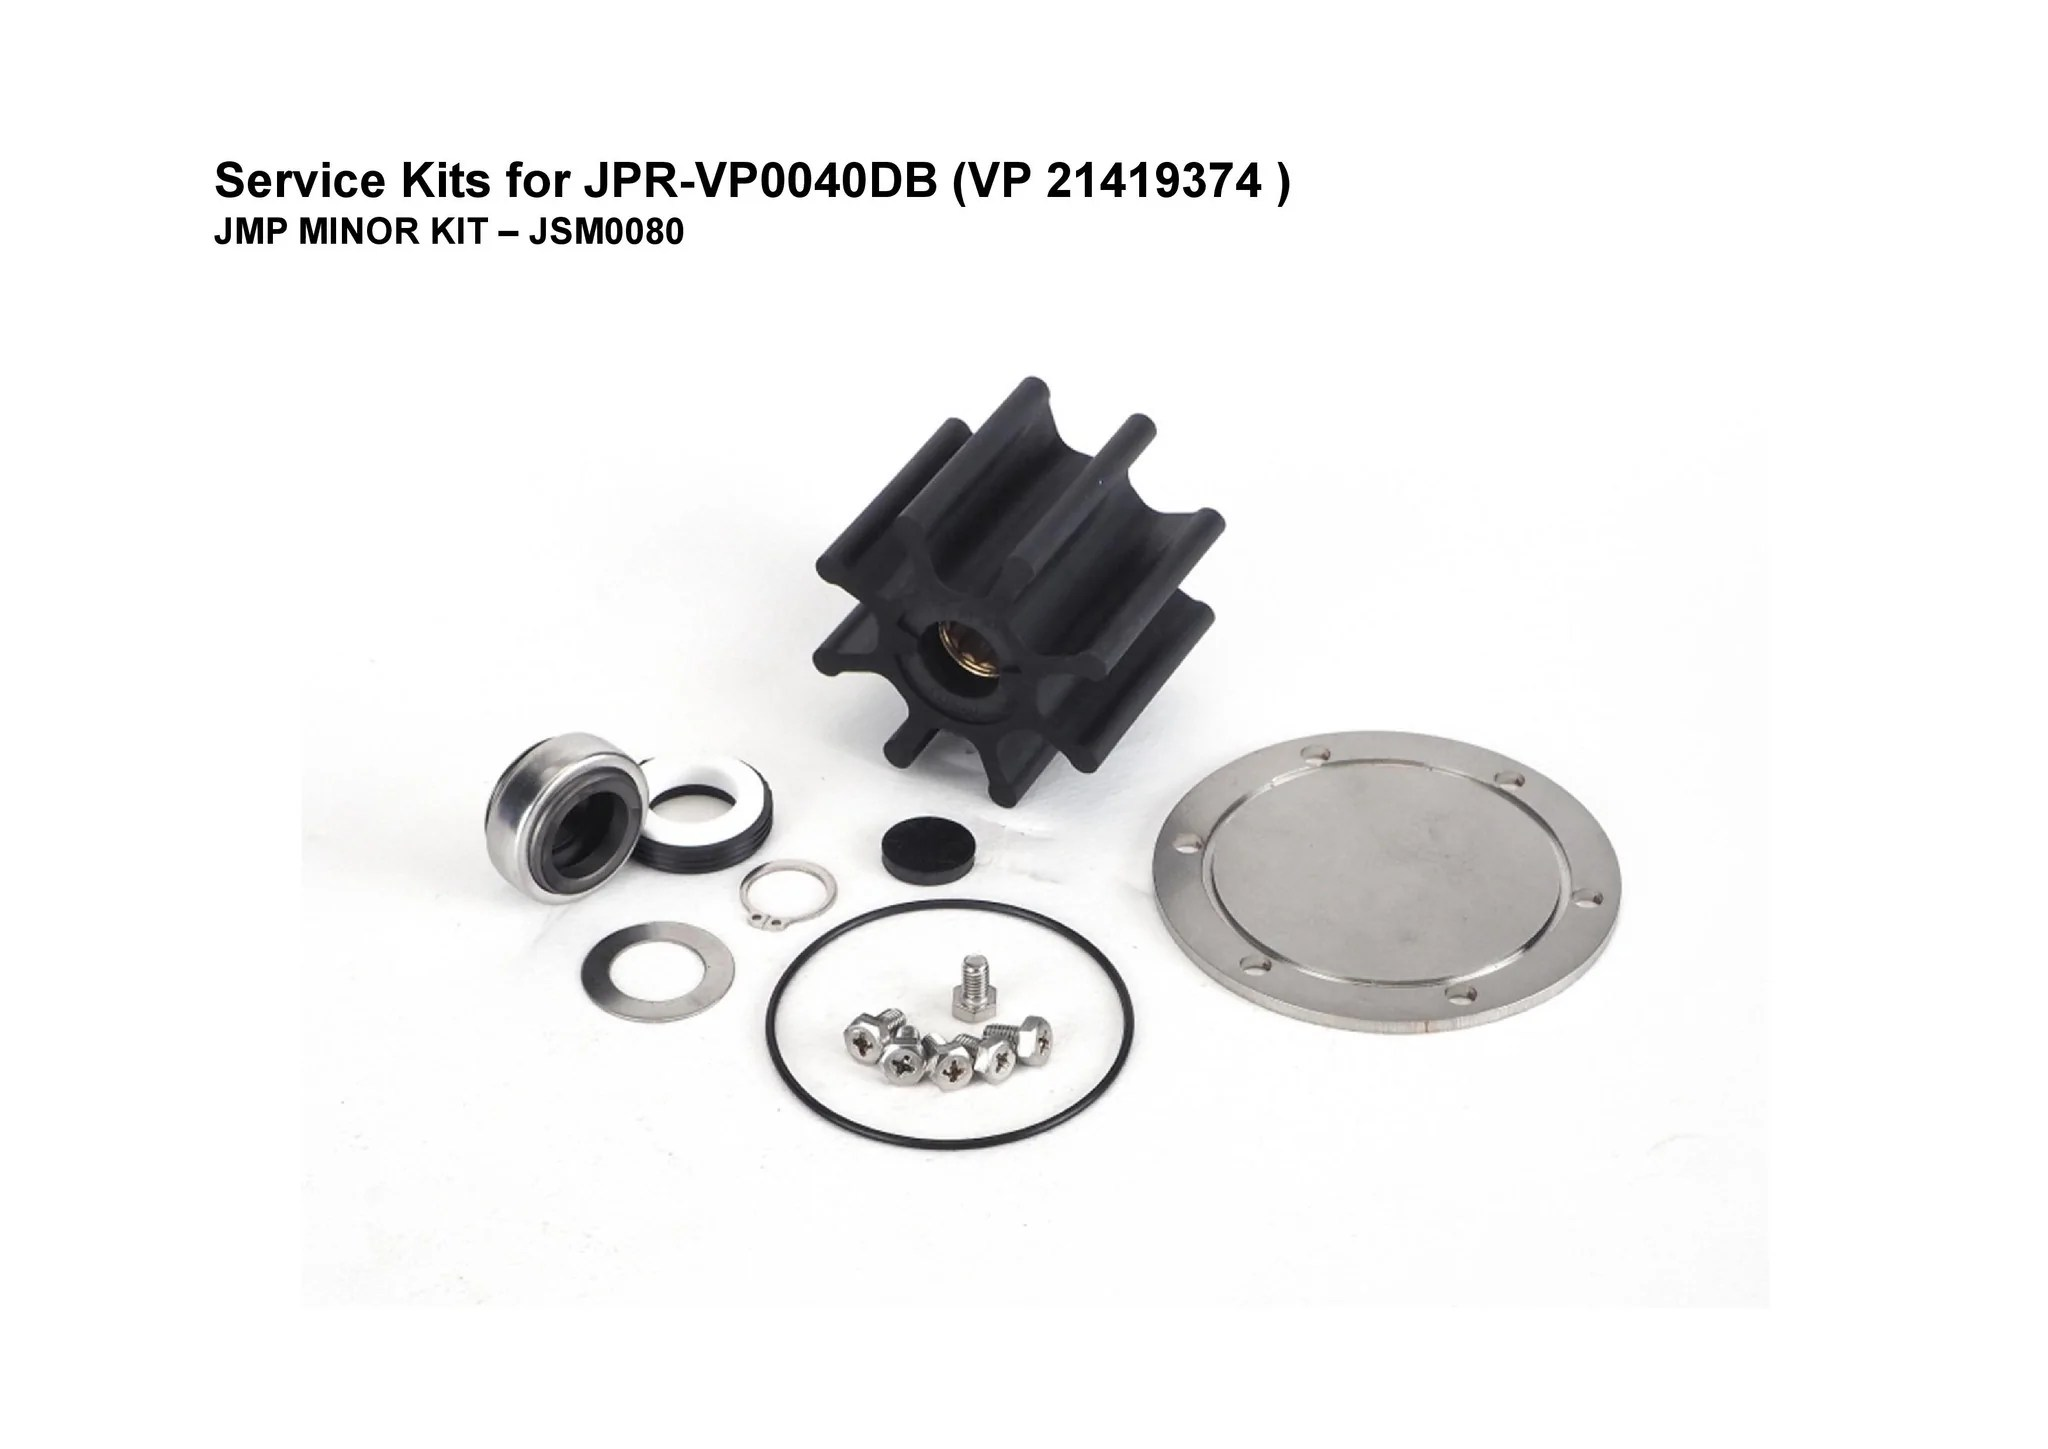 small resolution of minor service kit for volvo penta d4 engine seawater pump 21419374 fits volvo penta engines d4 225a e d4 260a e d4 260d e d4 300a e d4 300d e